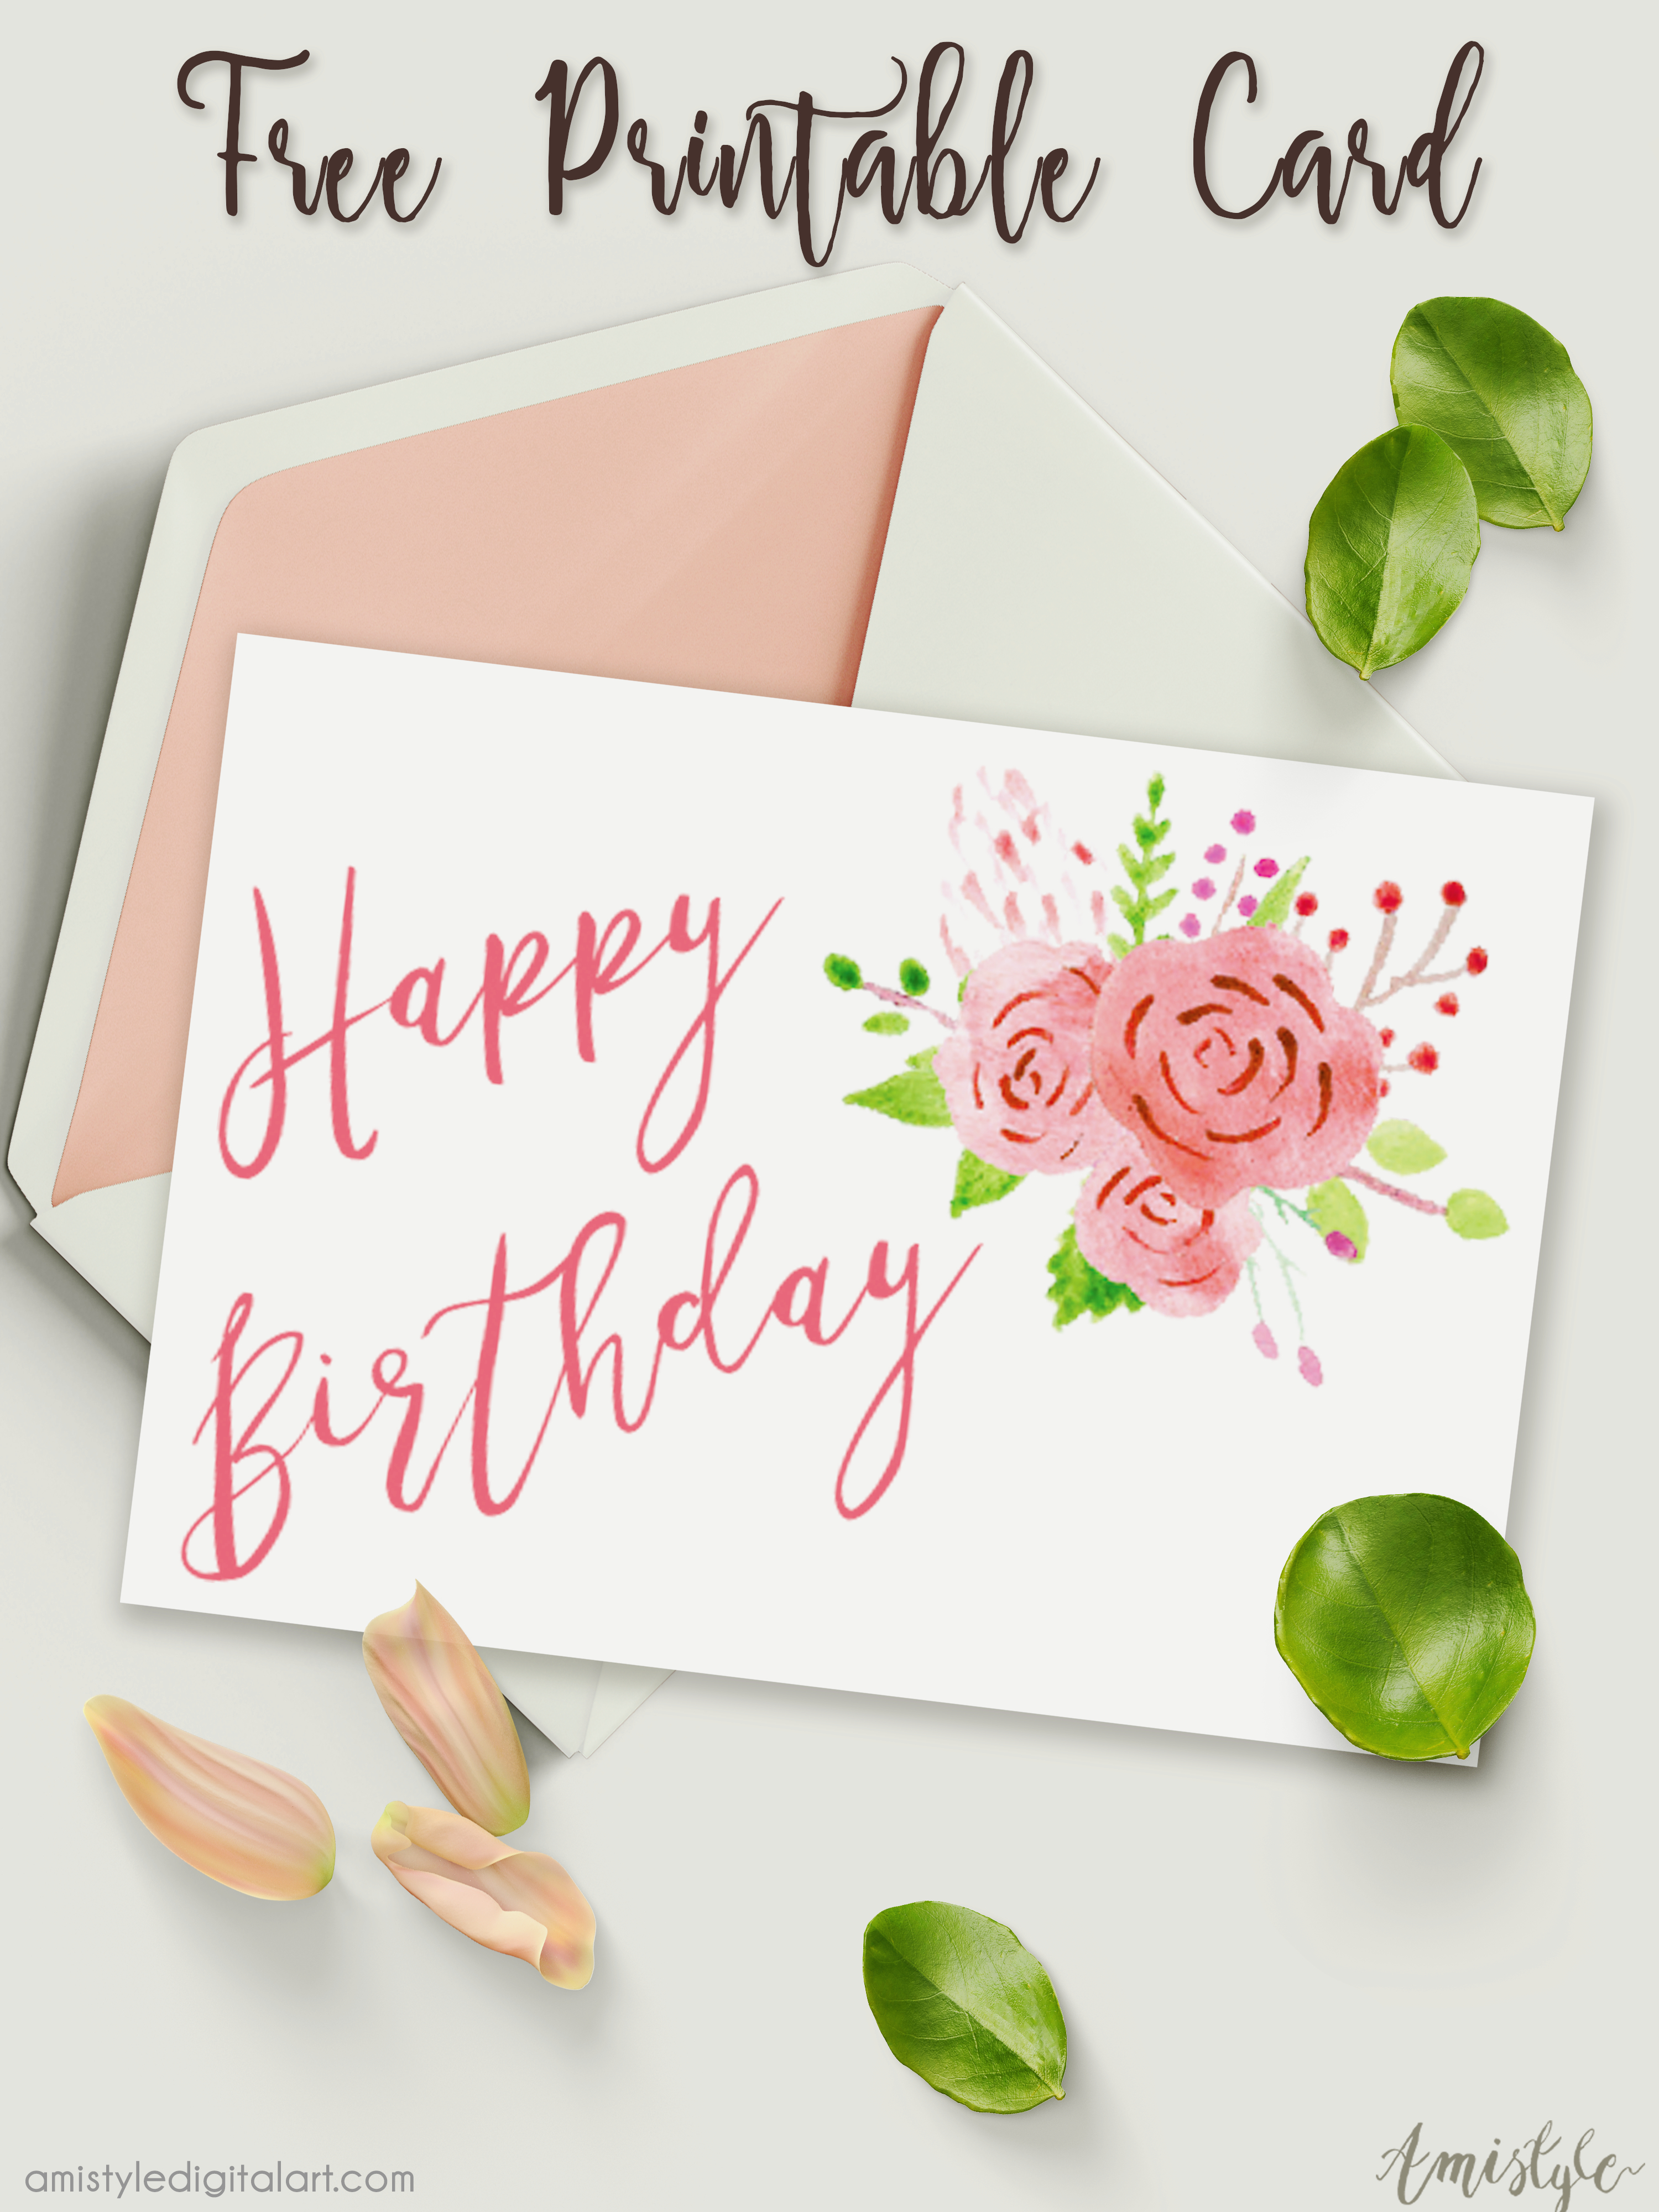 Free Printable Birthday Card With Watercolor Floral Design - Free Printable Personalized Birthday Cards